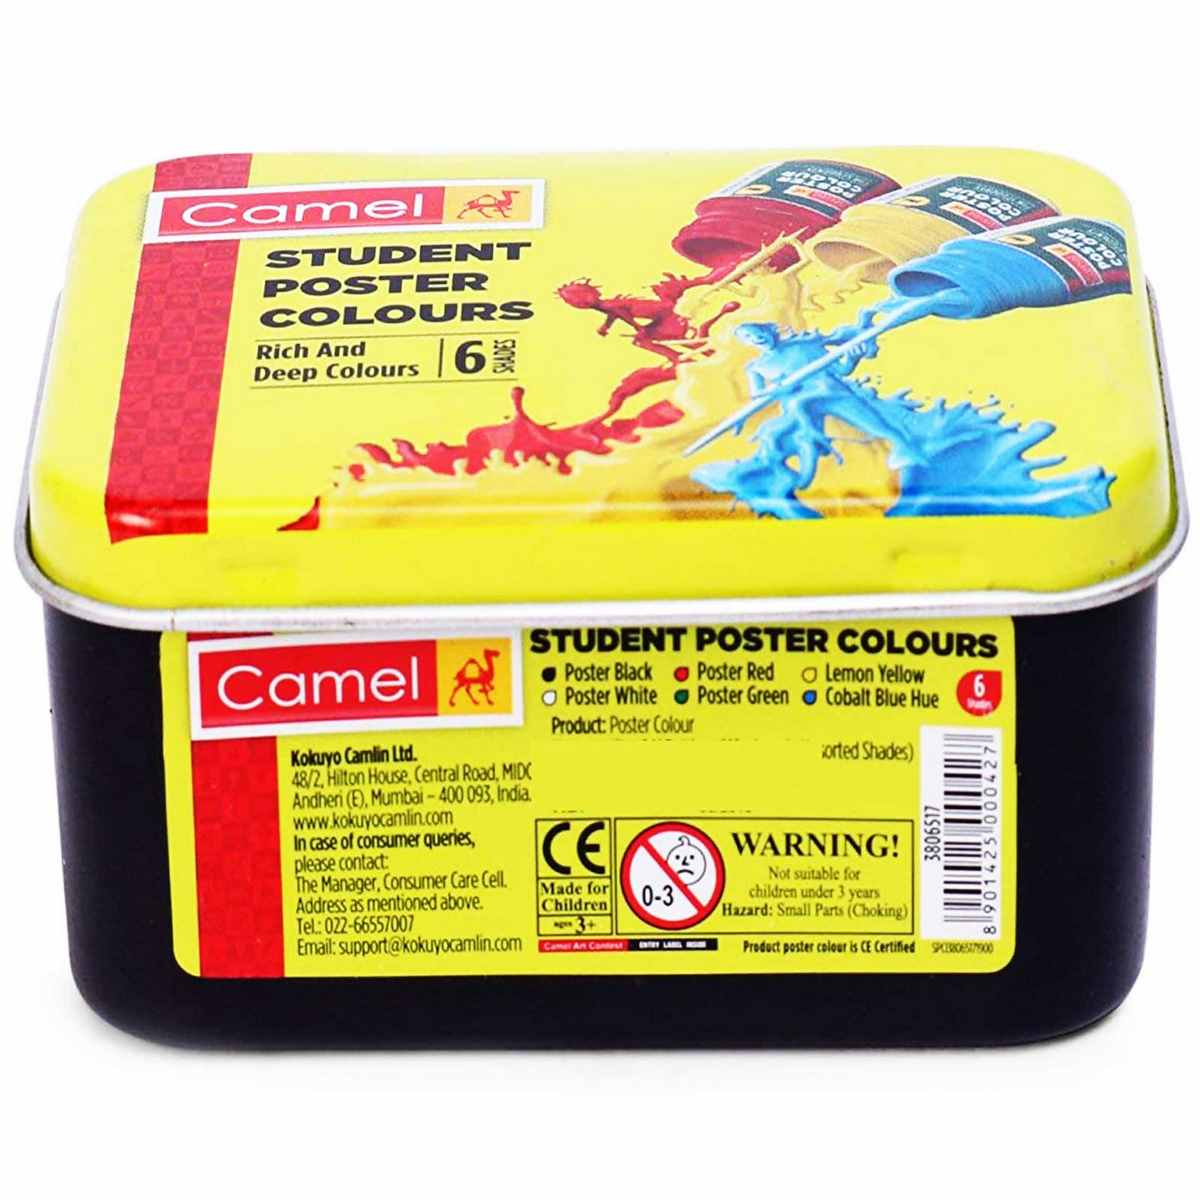 Camlin Student Poster Colours 4706517